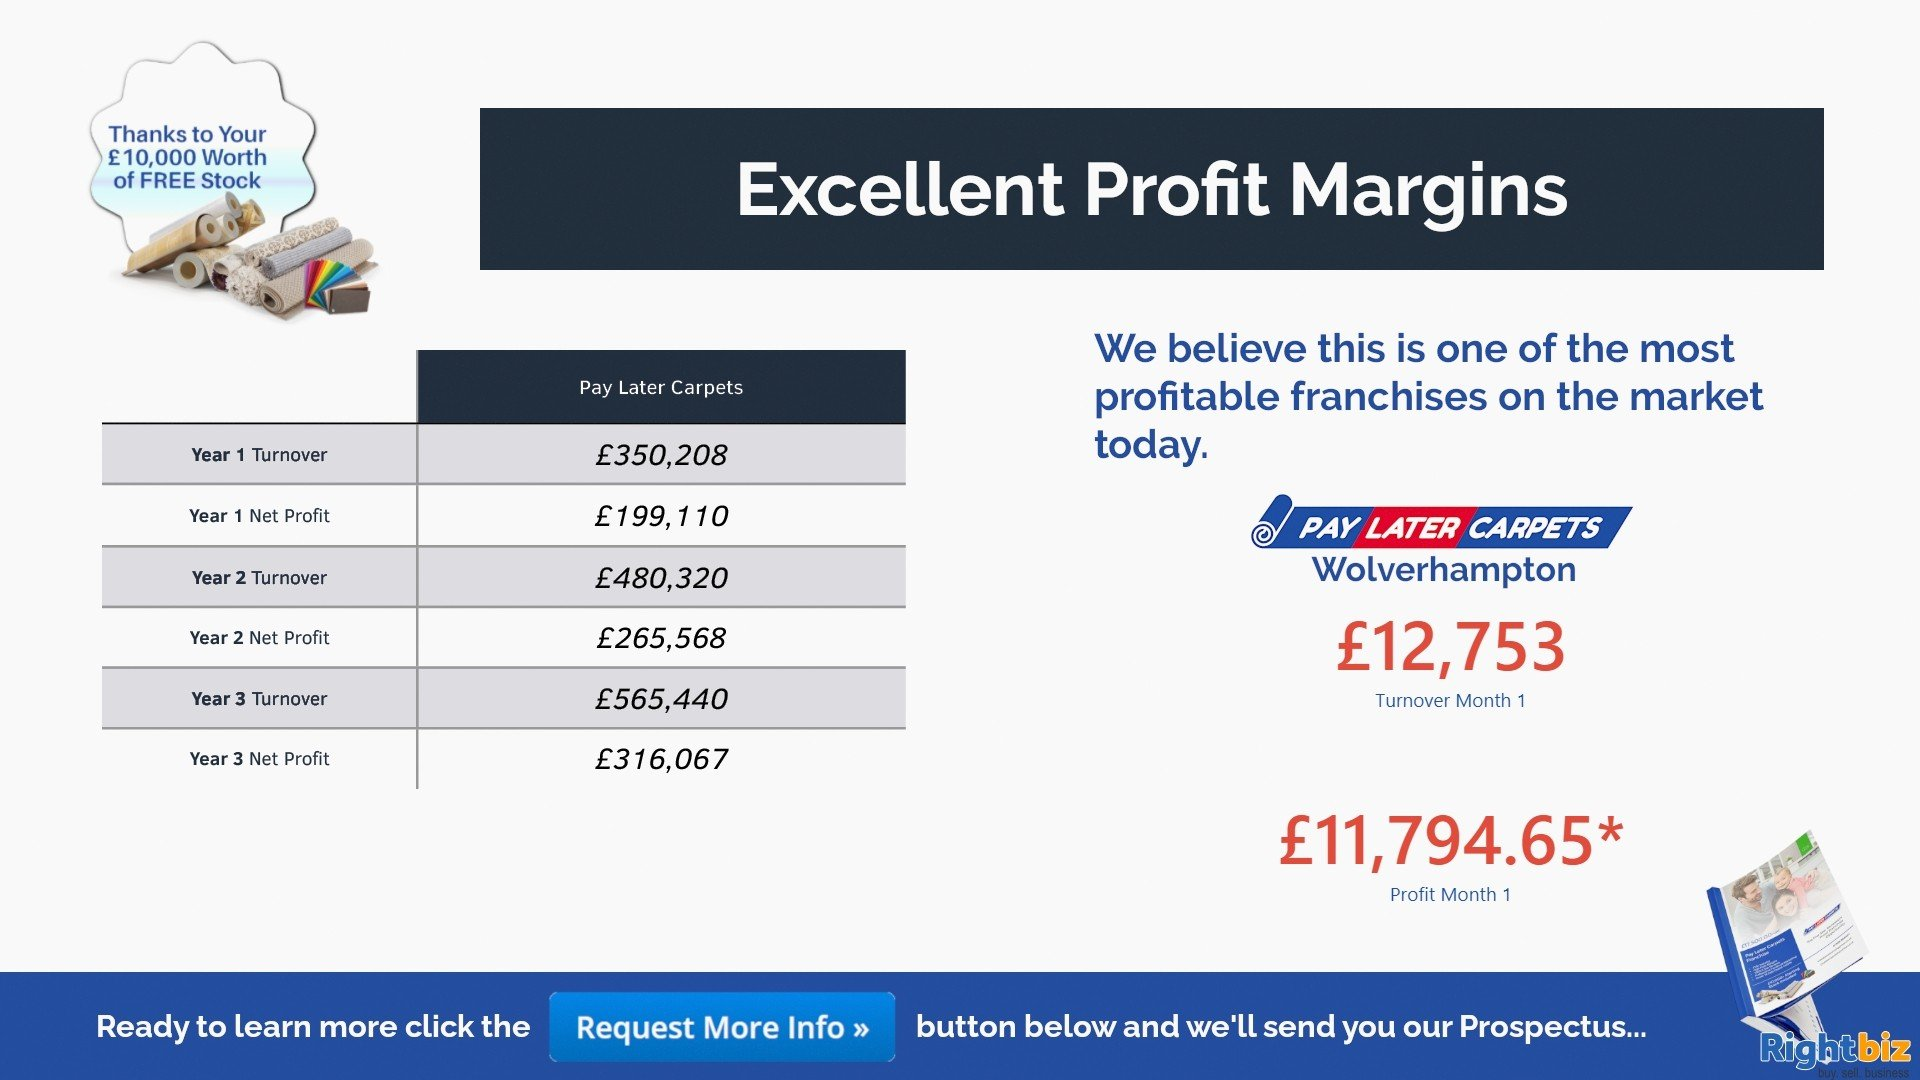 Pay Later Carpets Franchise Salisbury Our First Franchisee Made £11,000+ Profit in Month One - Image 3